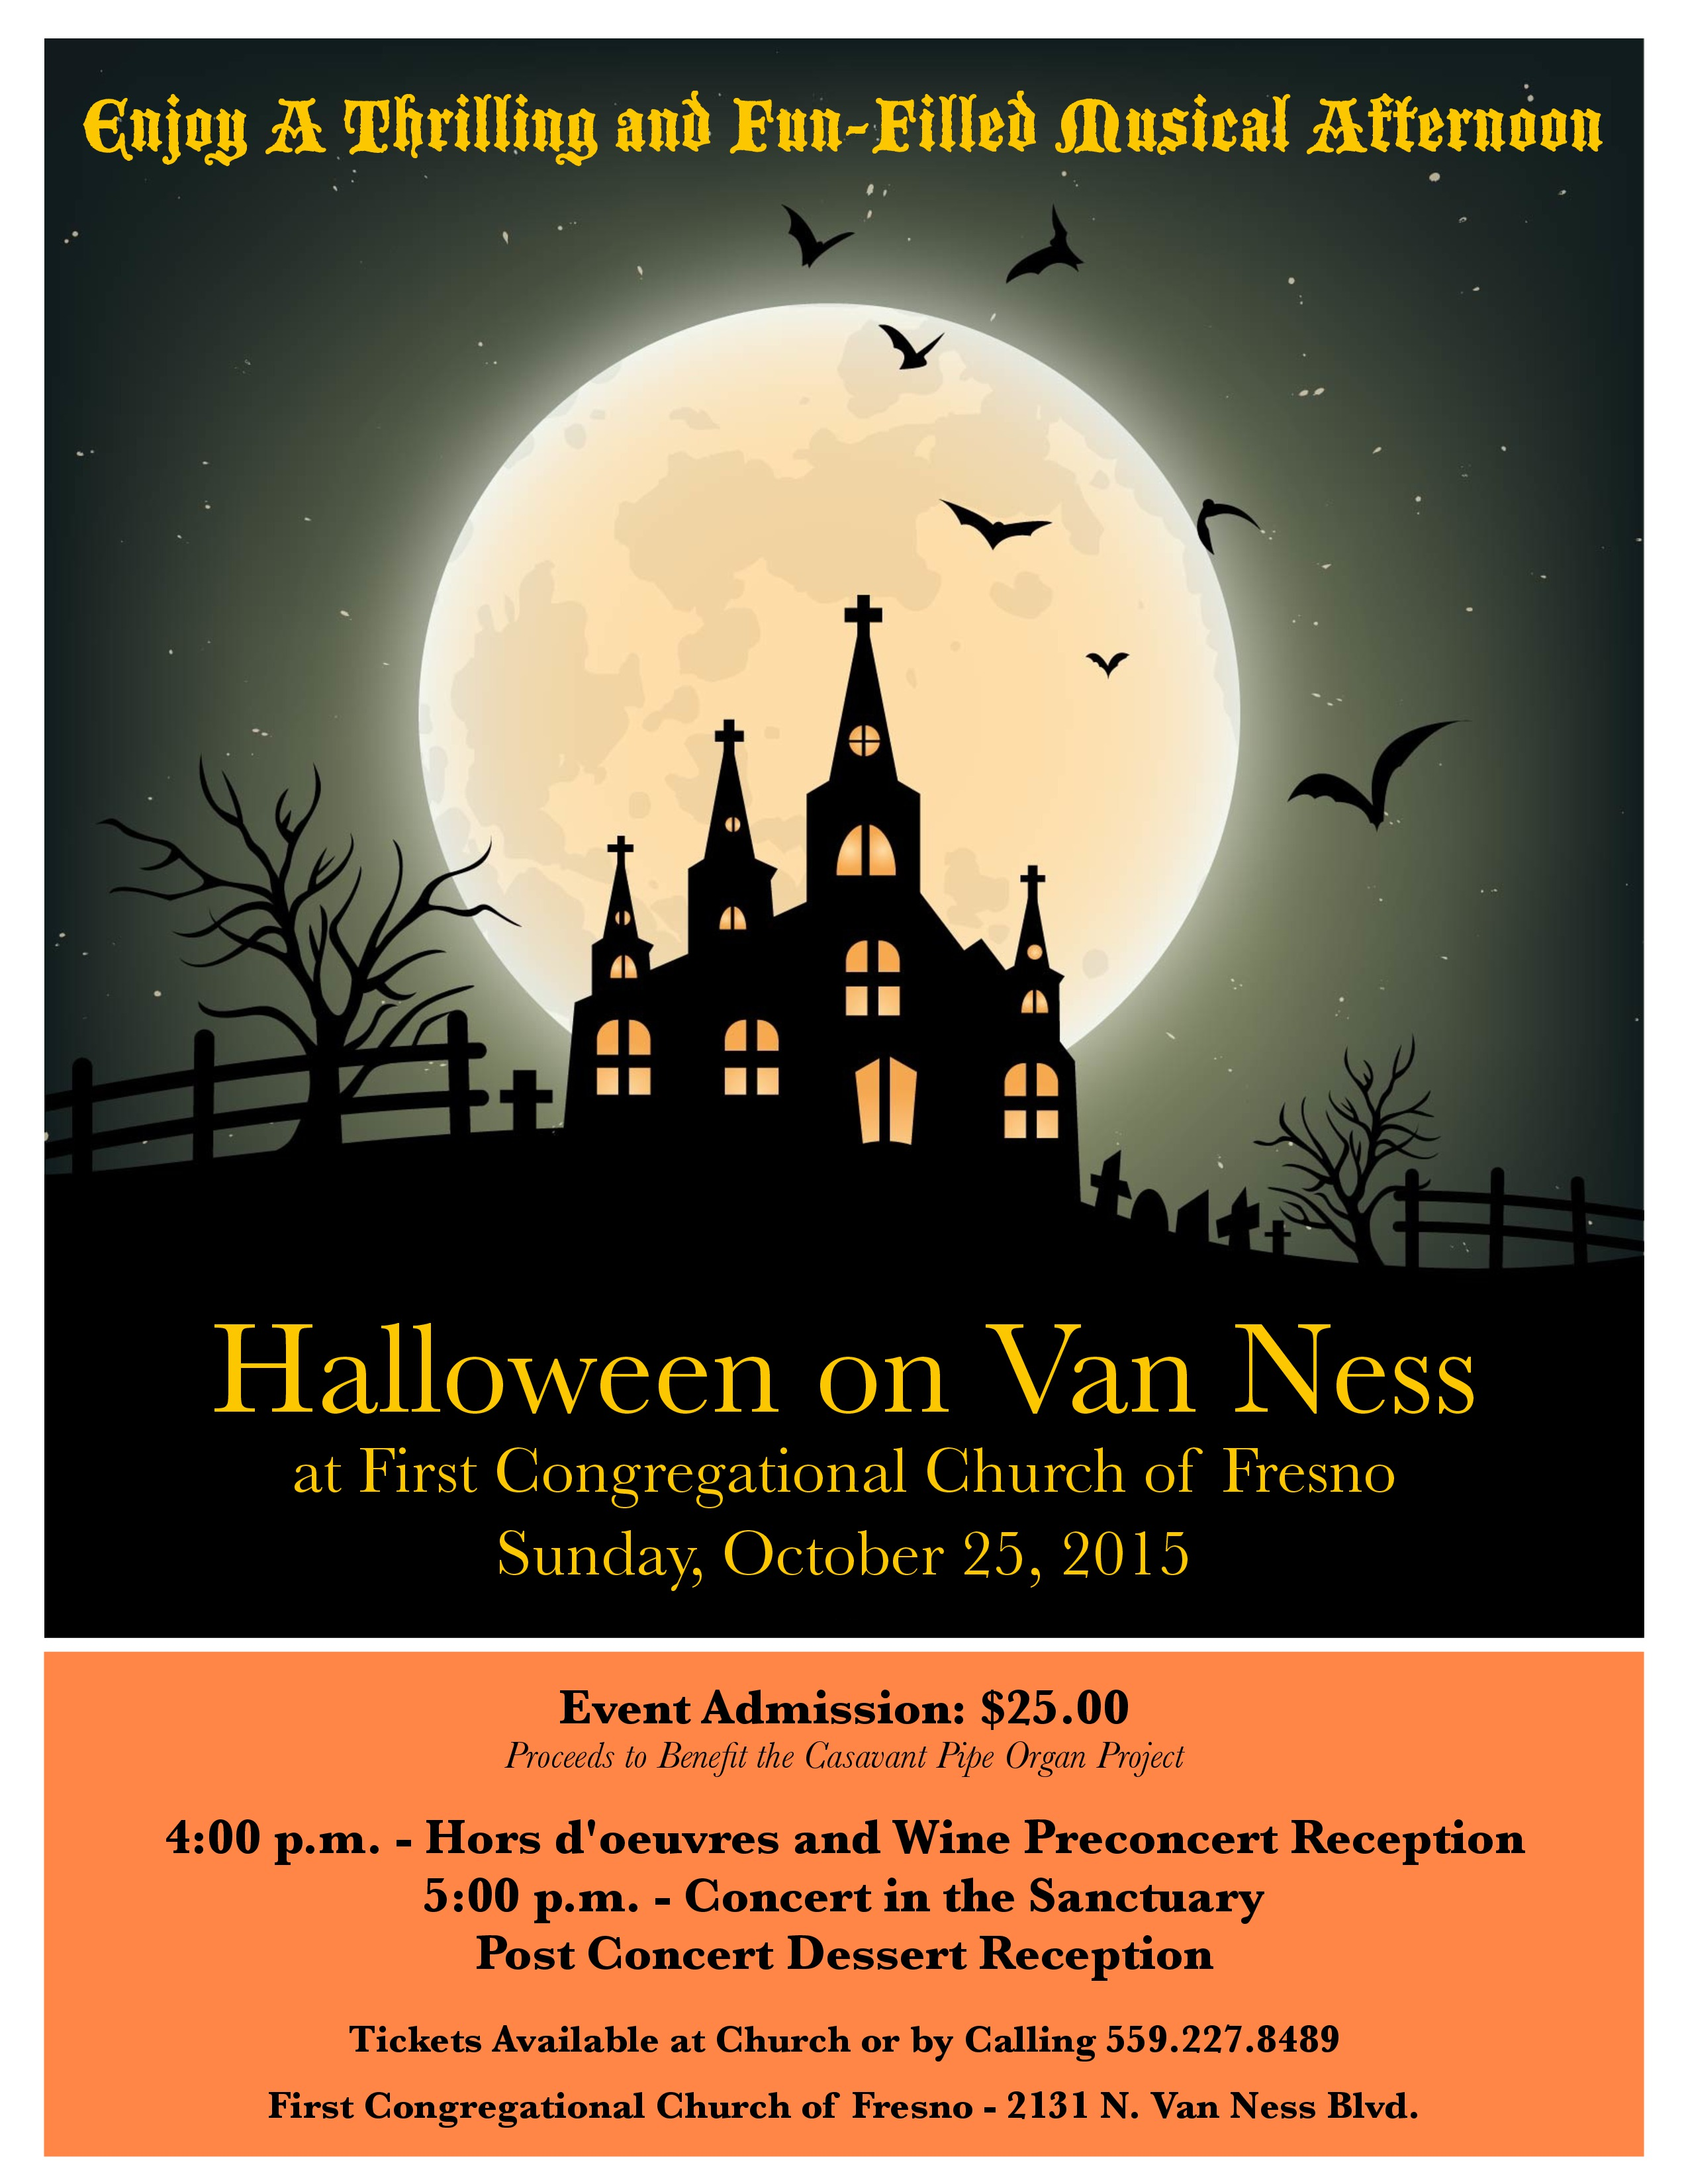 Halloween on Van Ness Poster 2015-page-0